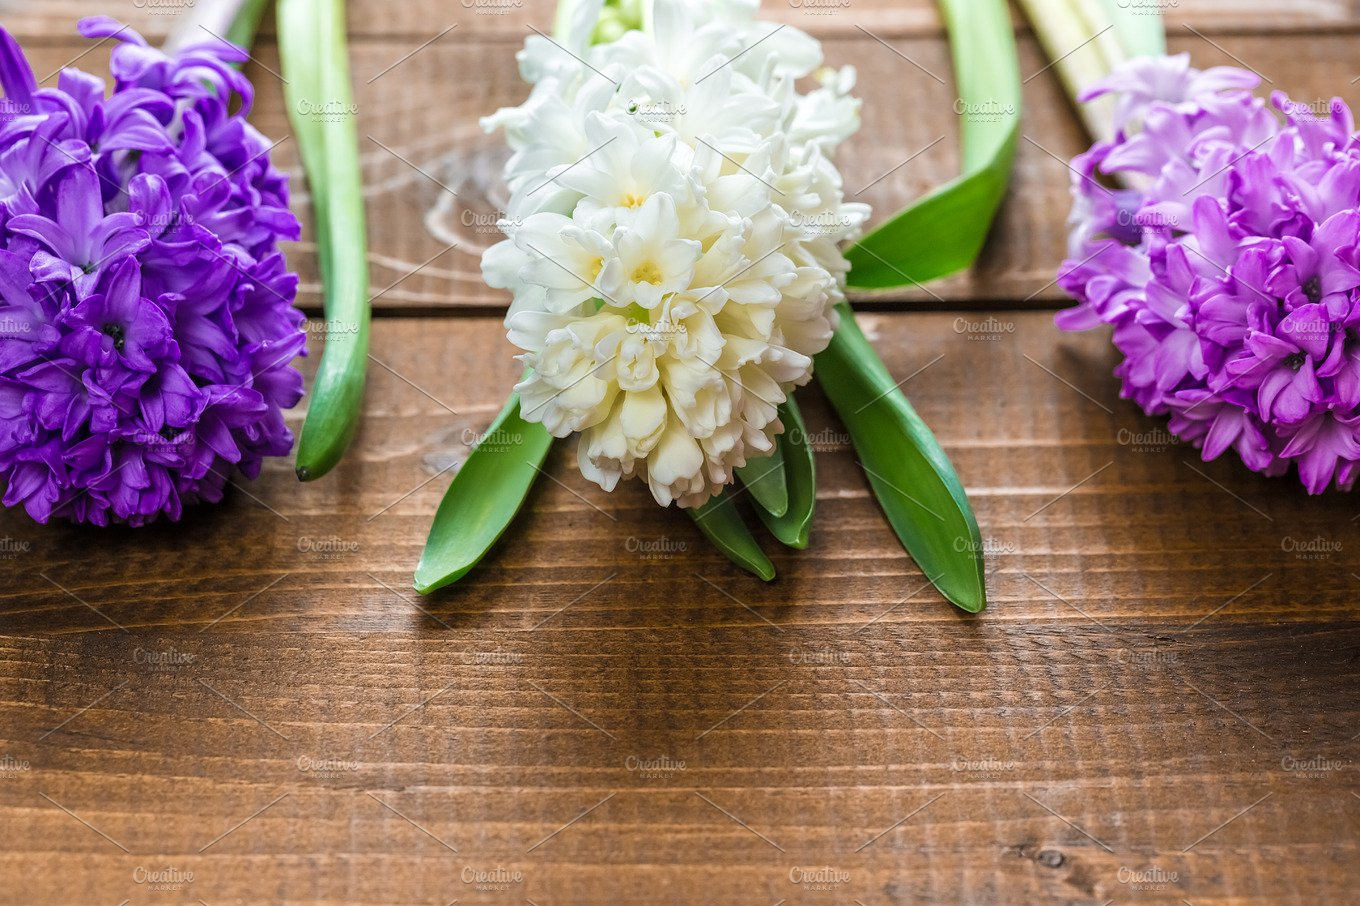 Fresh hyacinth flowers on wooden background beautiful idea for fresh hyacinth flowers on wooden background beautiful idea for greeting cards for valentines day march 8 and mothers day free space holiday photos izmirmasajfo